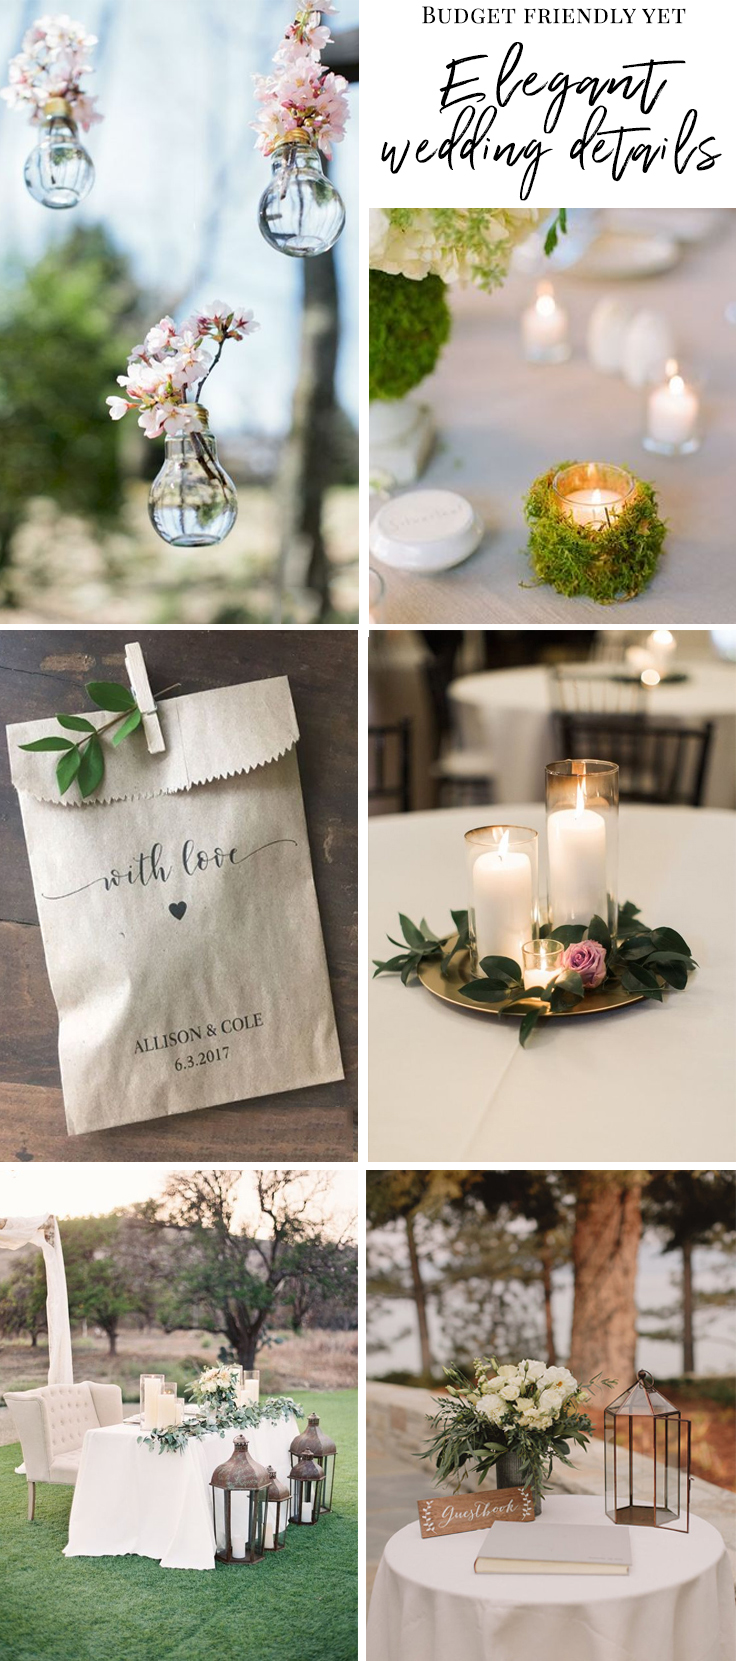 We tell you the details you can skip if you want true elegance at your wedding   This and more at www.SheerEverAfter.com